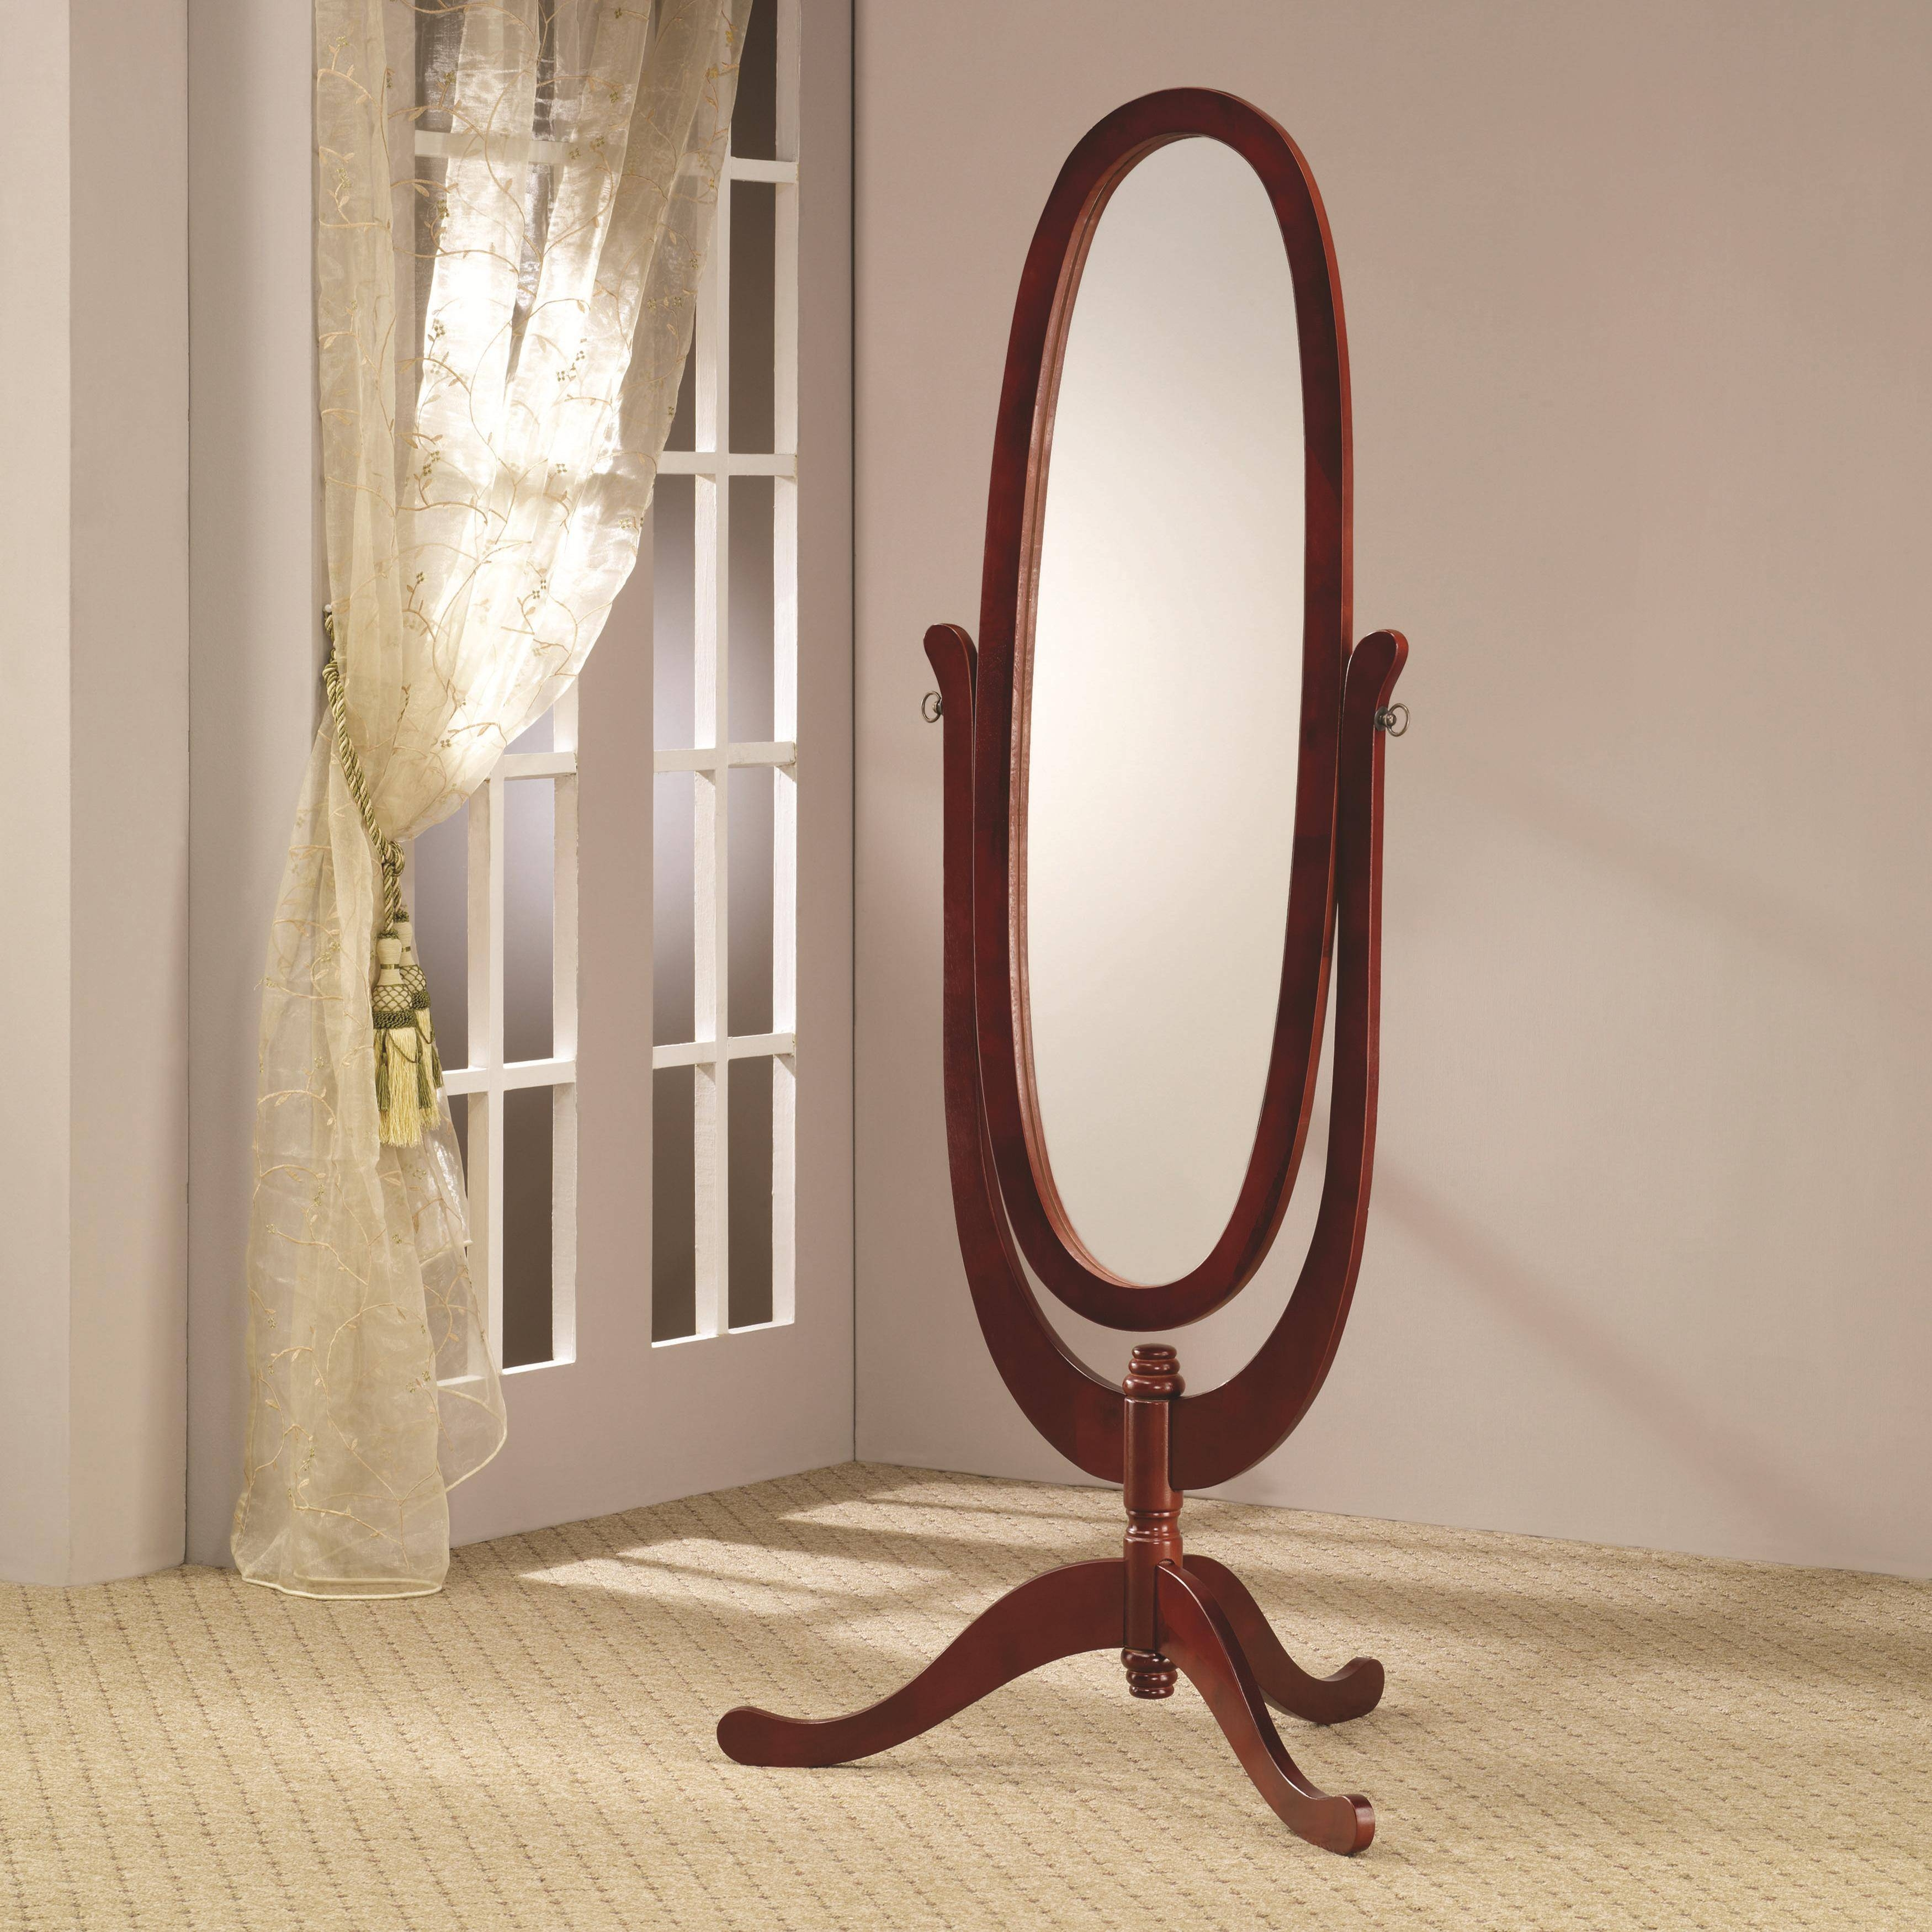 Decorating: Oak Cheval Mirror With 3 Legs For Home Accessories Ideas With Free Standing Oak Mirrors (View 4 of 15)